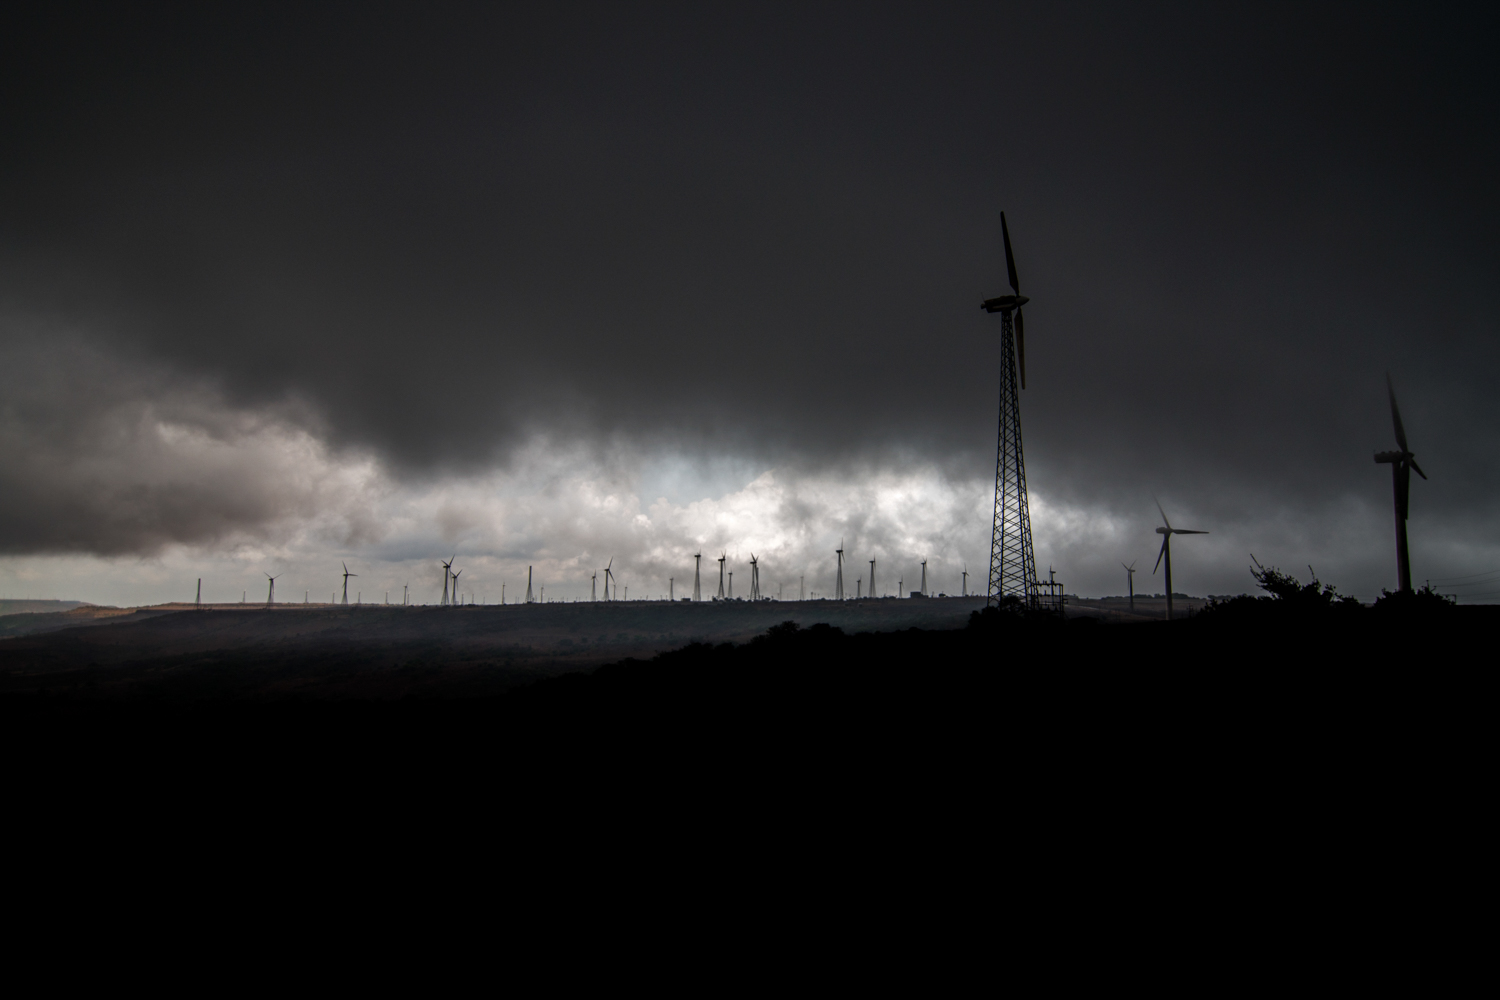 The most dramatic change however are the windmills in the Satara region. Asia's largest wind farm is located in and around the Chalkewadi plateau.